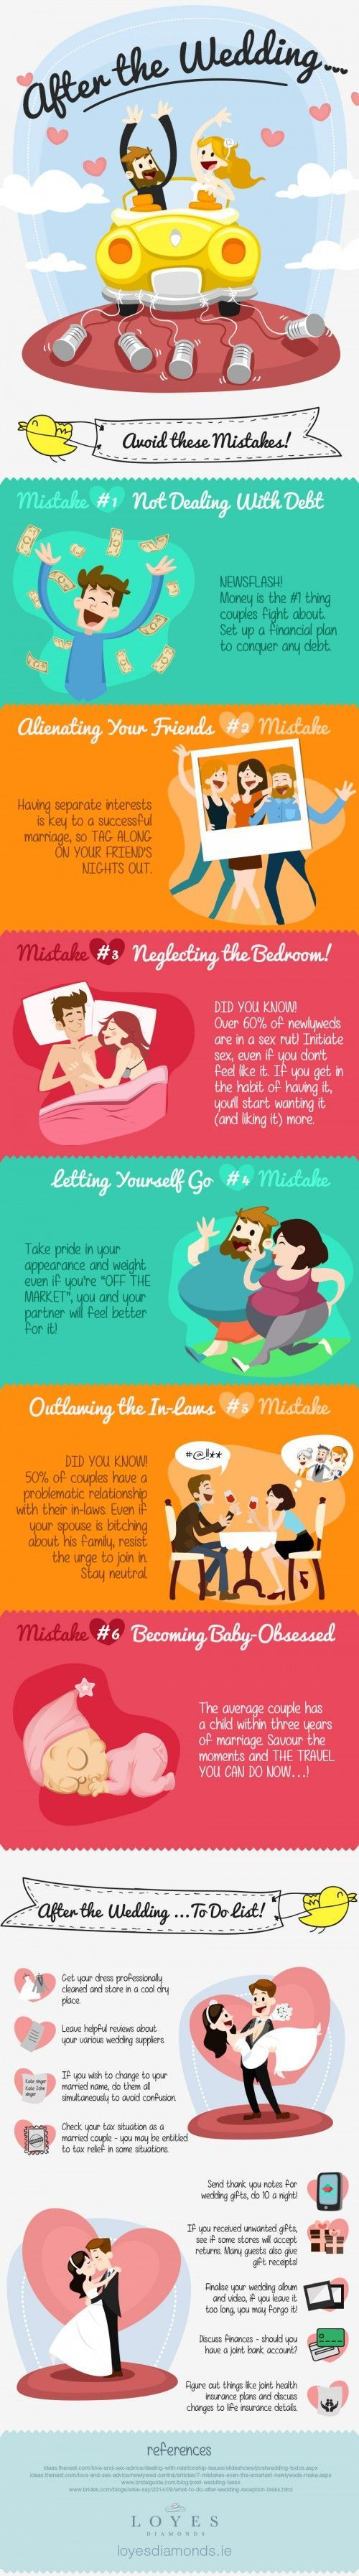 What to do (and not to do) AFTER the wedding! Great tips :)